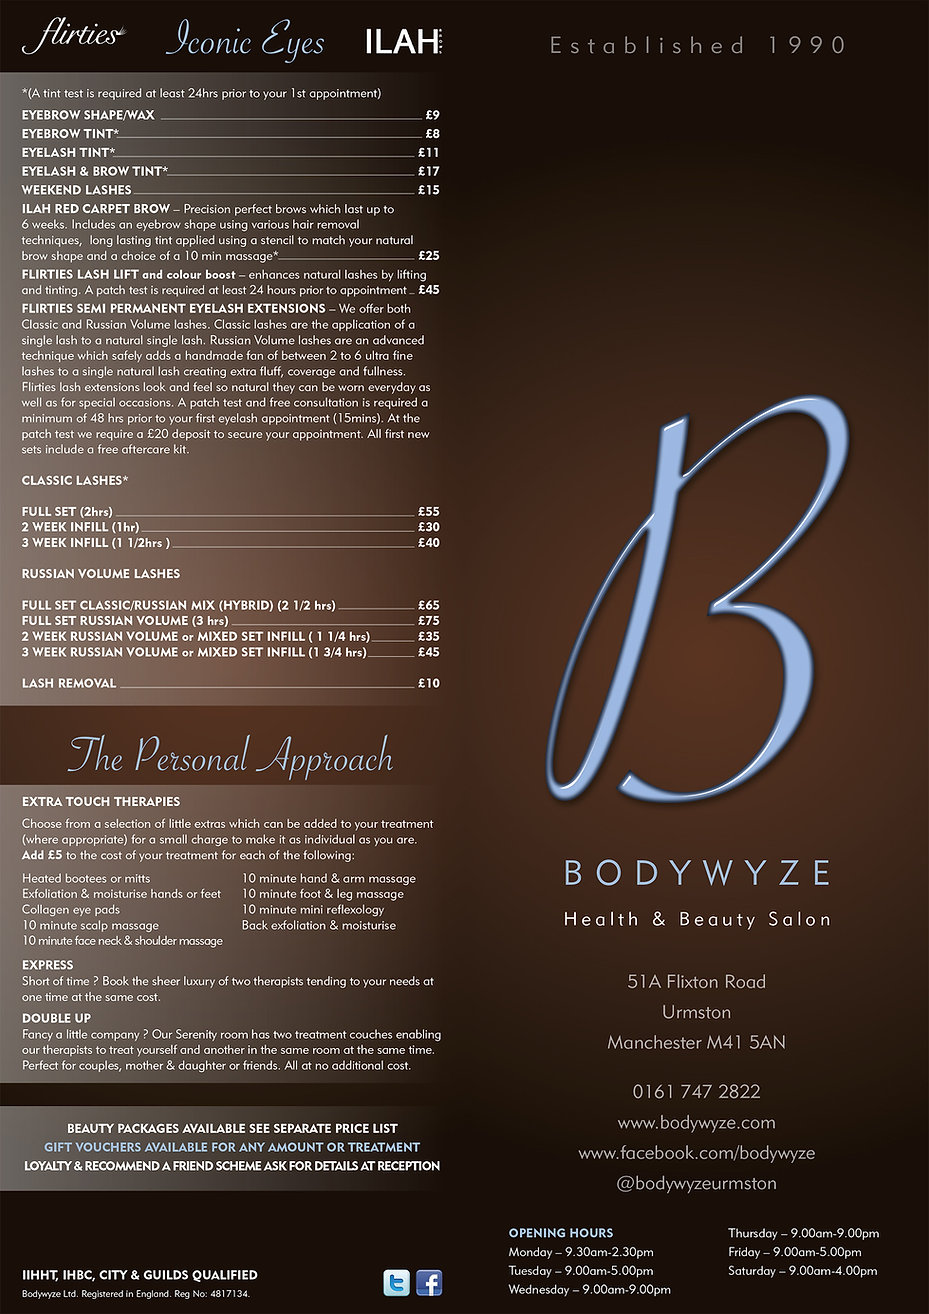 Bodywyze-price-list-January-2019-1 (1).j